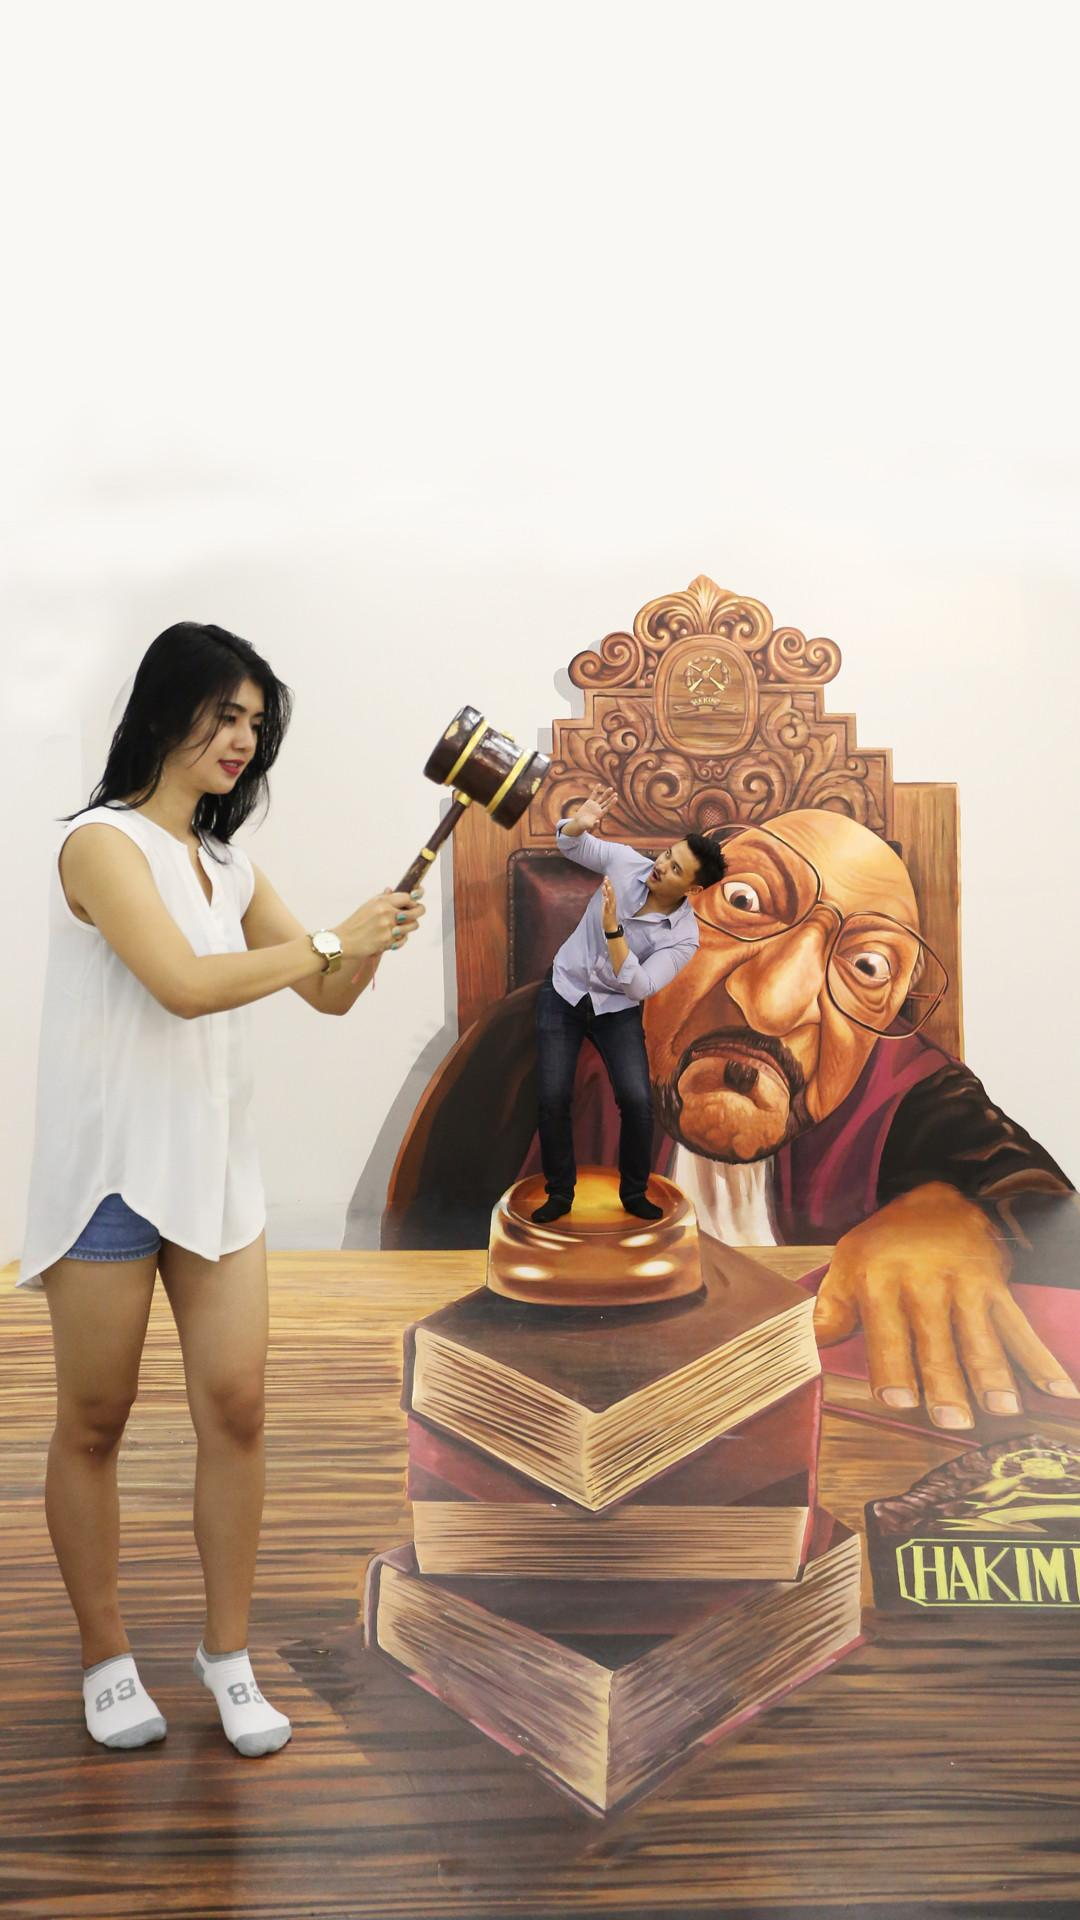 Museum Bali 3D - gallery pictures